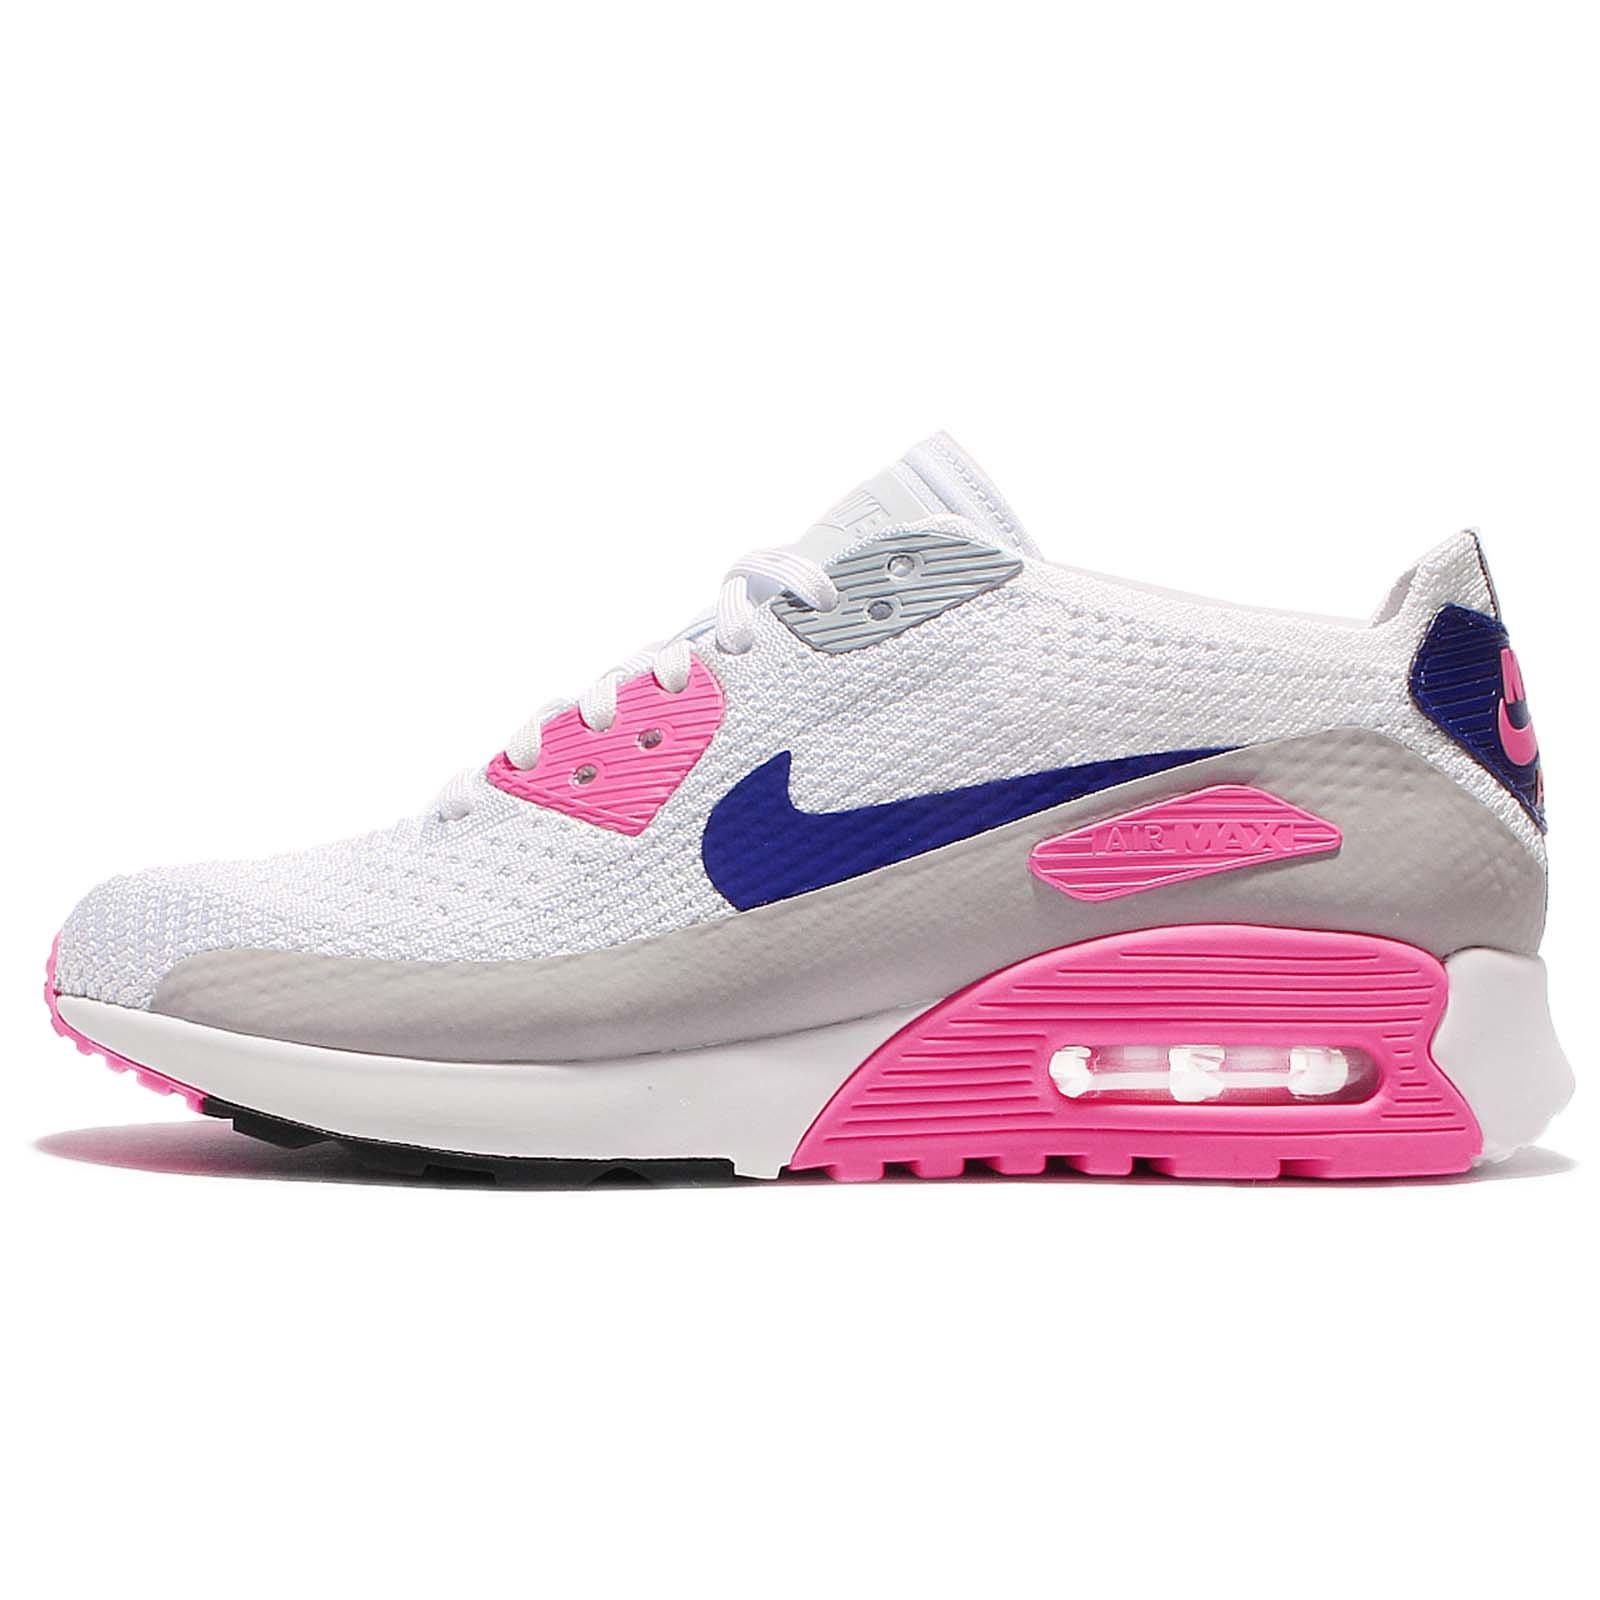 Nike Air Max 90 Ultra 2.0 Flyknit Women's Sneaker (7 B(M) US)